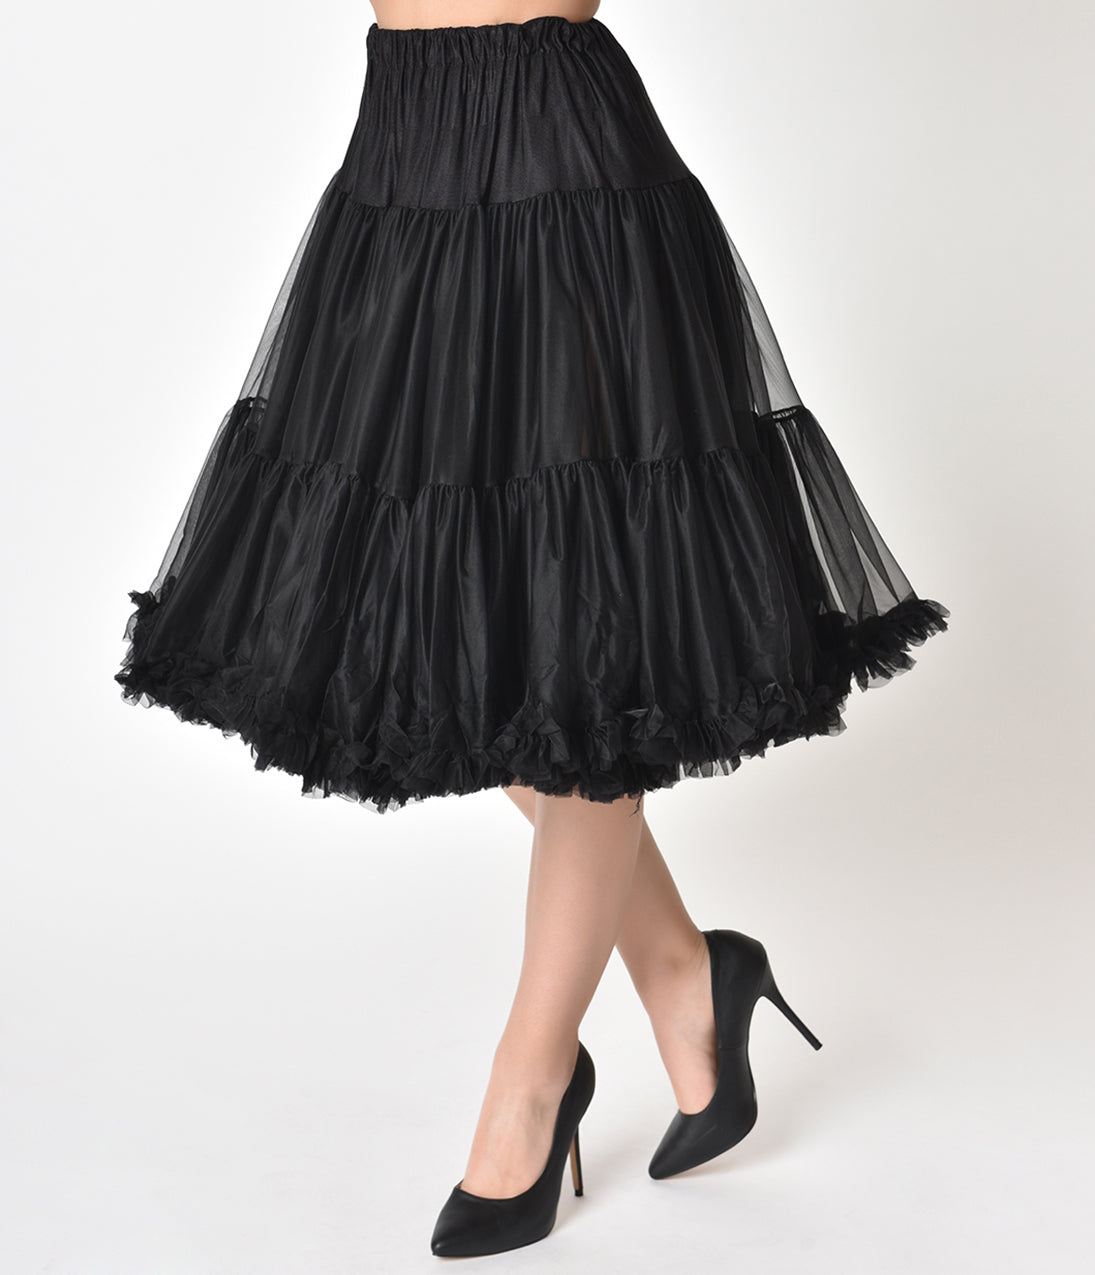 50s Skirt Styles | Poodle Skirts, Circle Skirts, Pencil Skirts 1950S Style Black Tea Length Ruffled Chiffon Petticoat Crinoline $68.00 AT vintagedancer.com